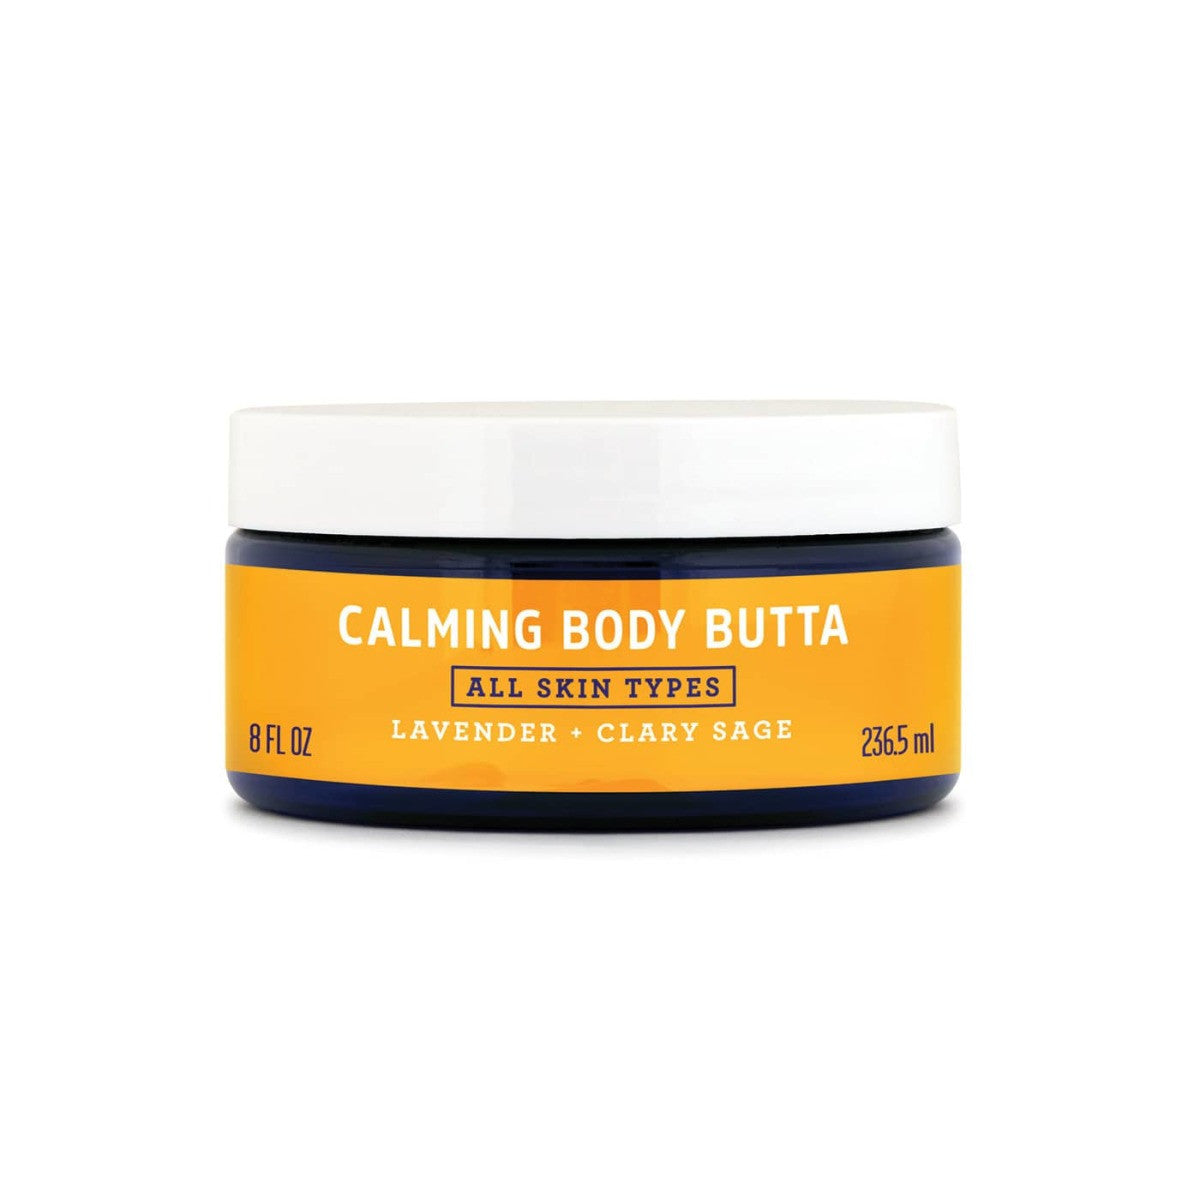 FATCO Calming Body Butta 8 oz jar front view